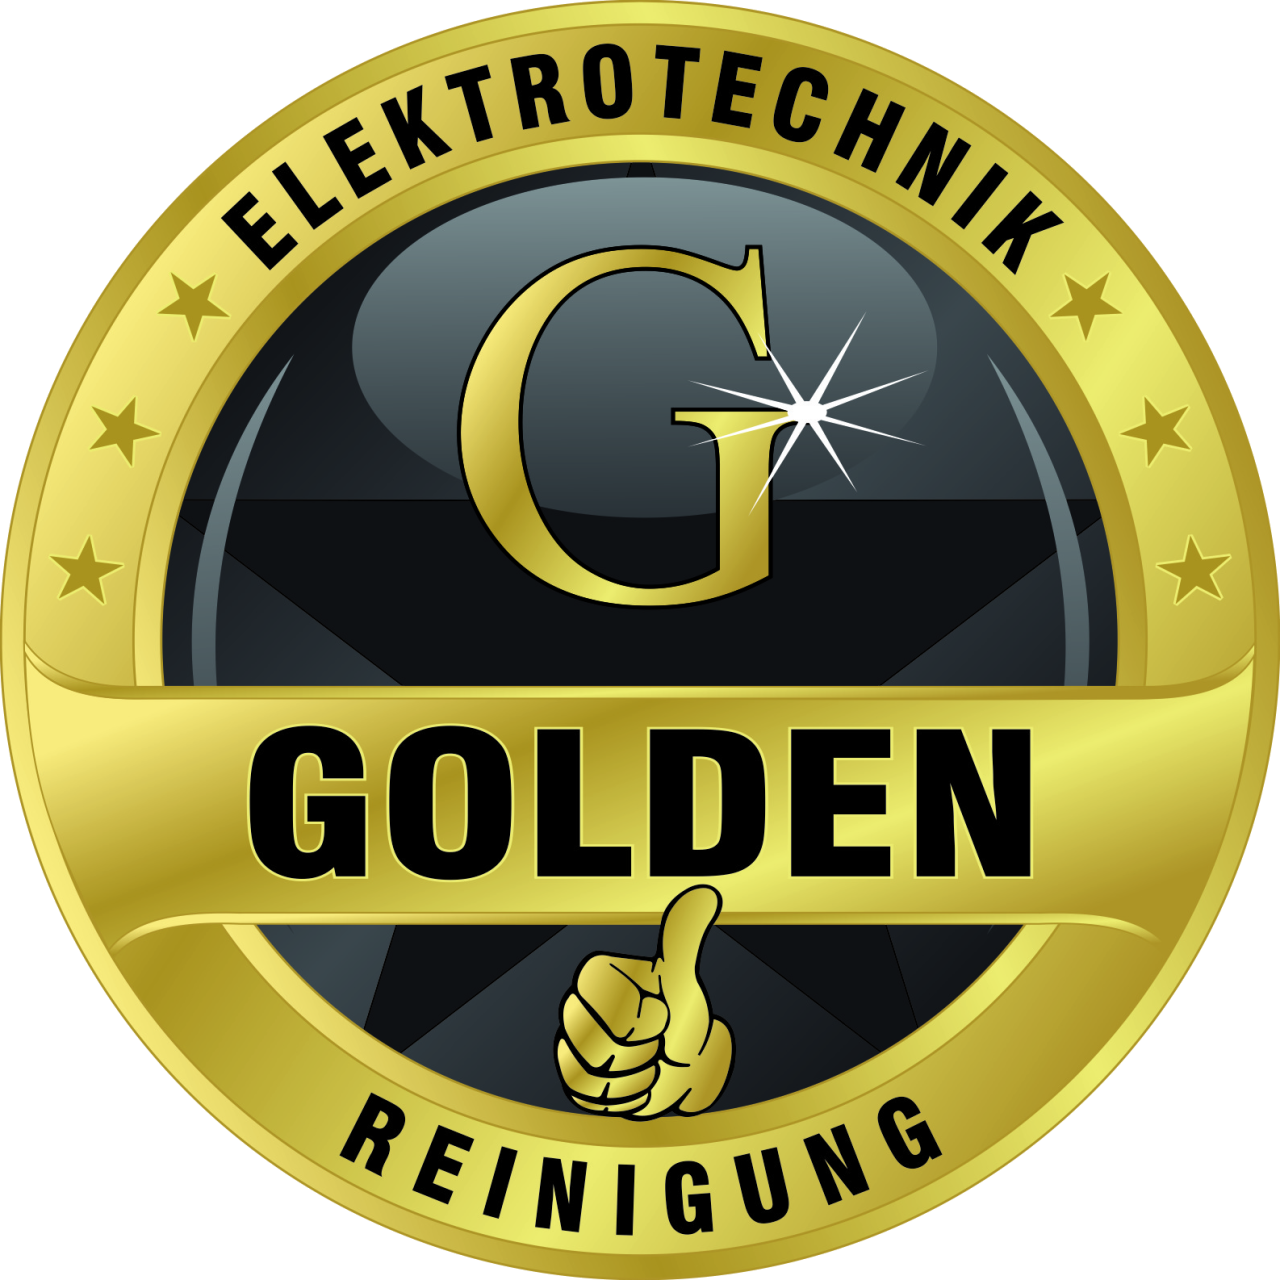 Golden Technik